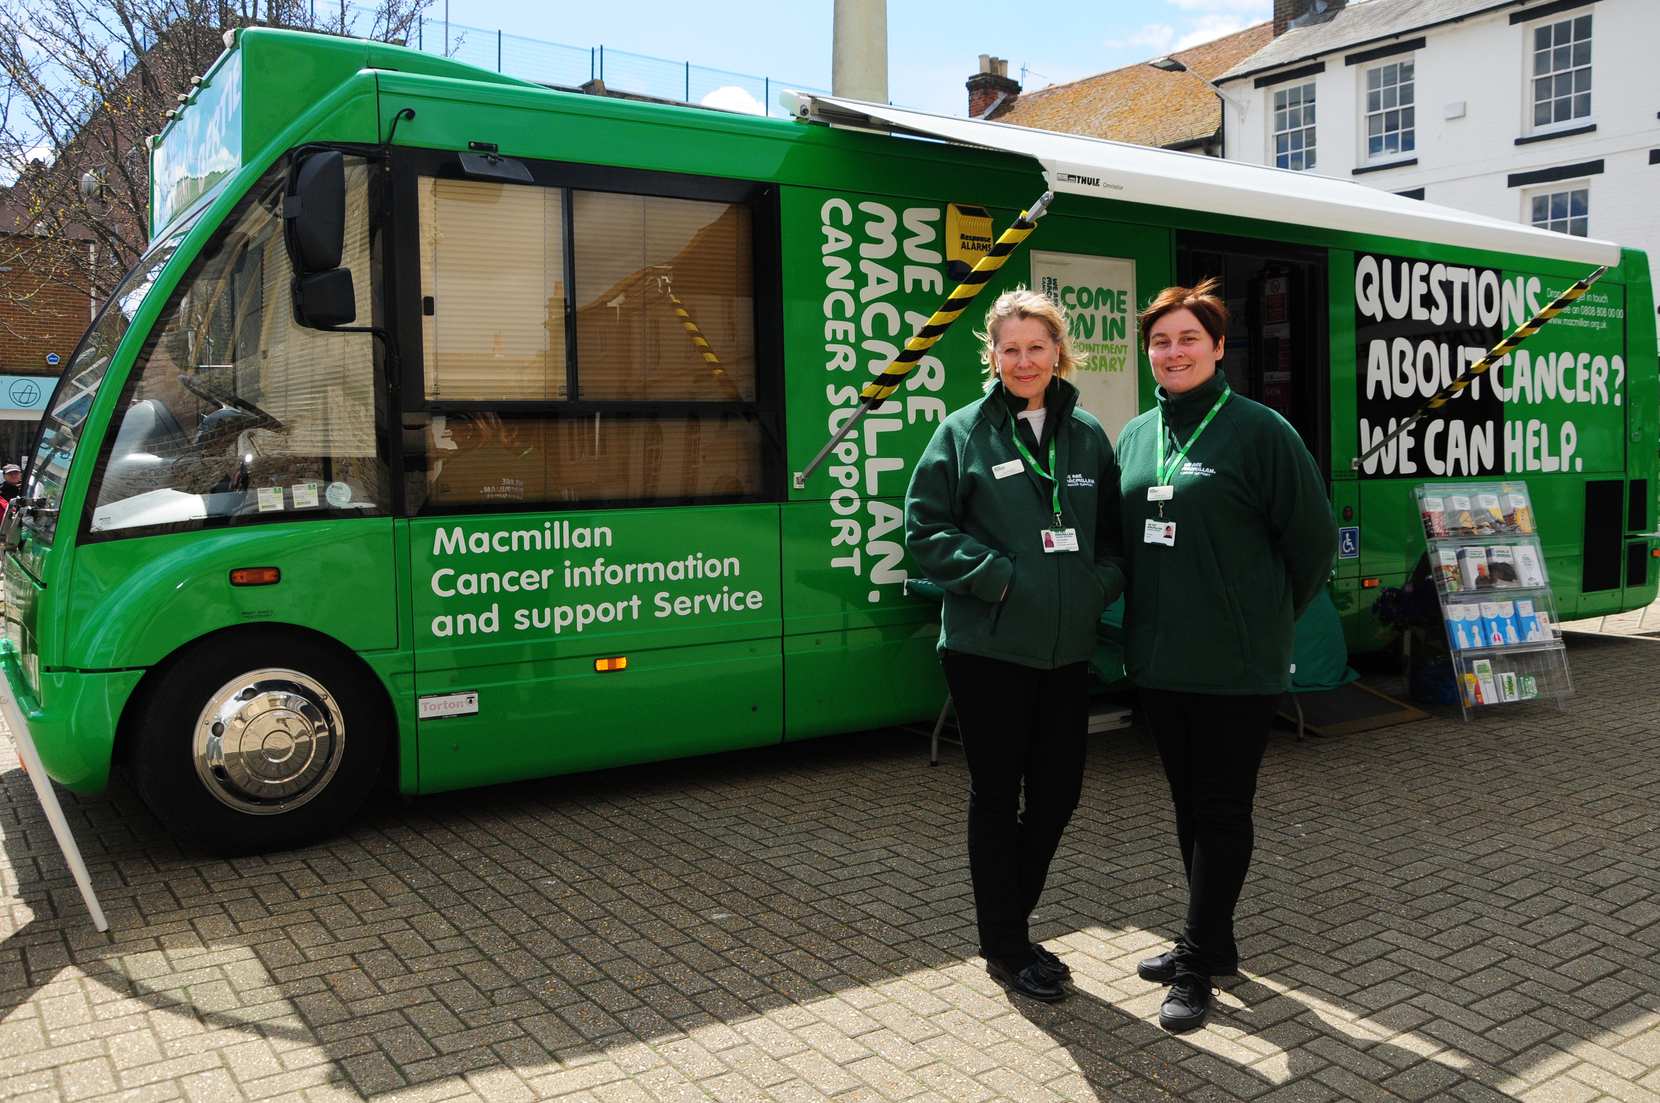 Macmillan Cancer Support Information Service in Reading